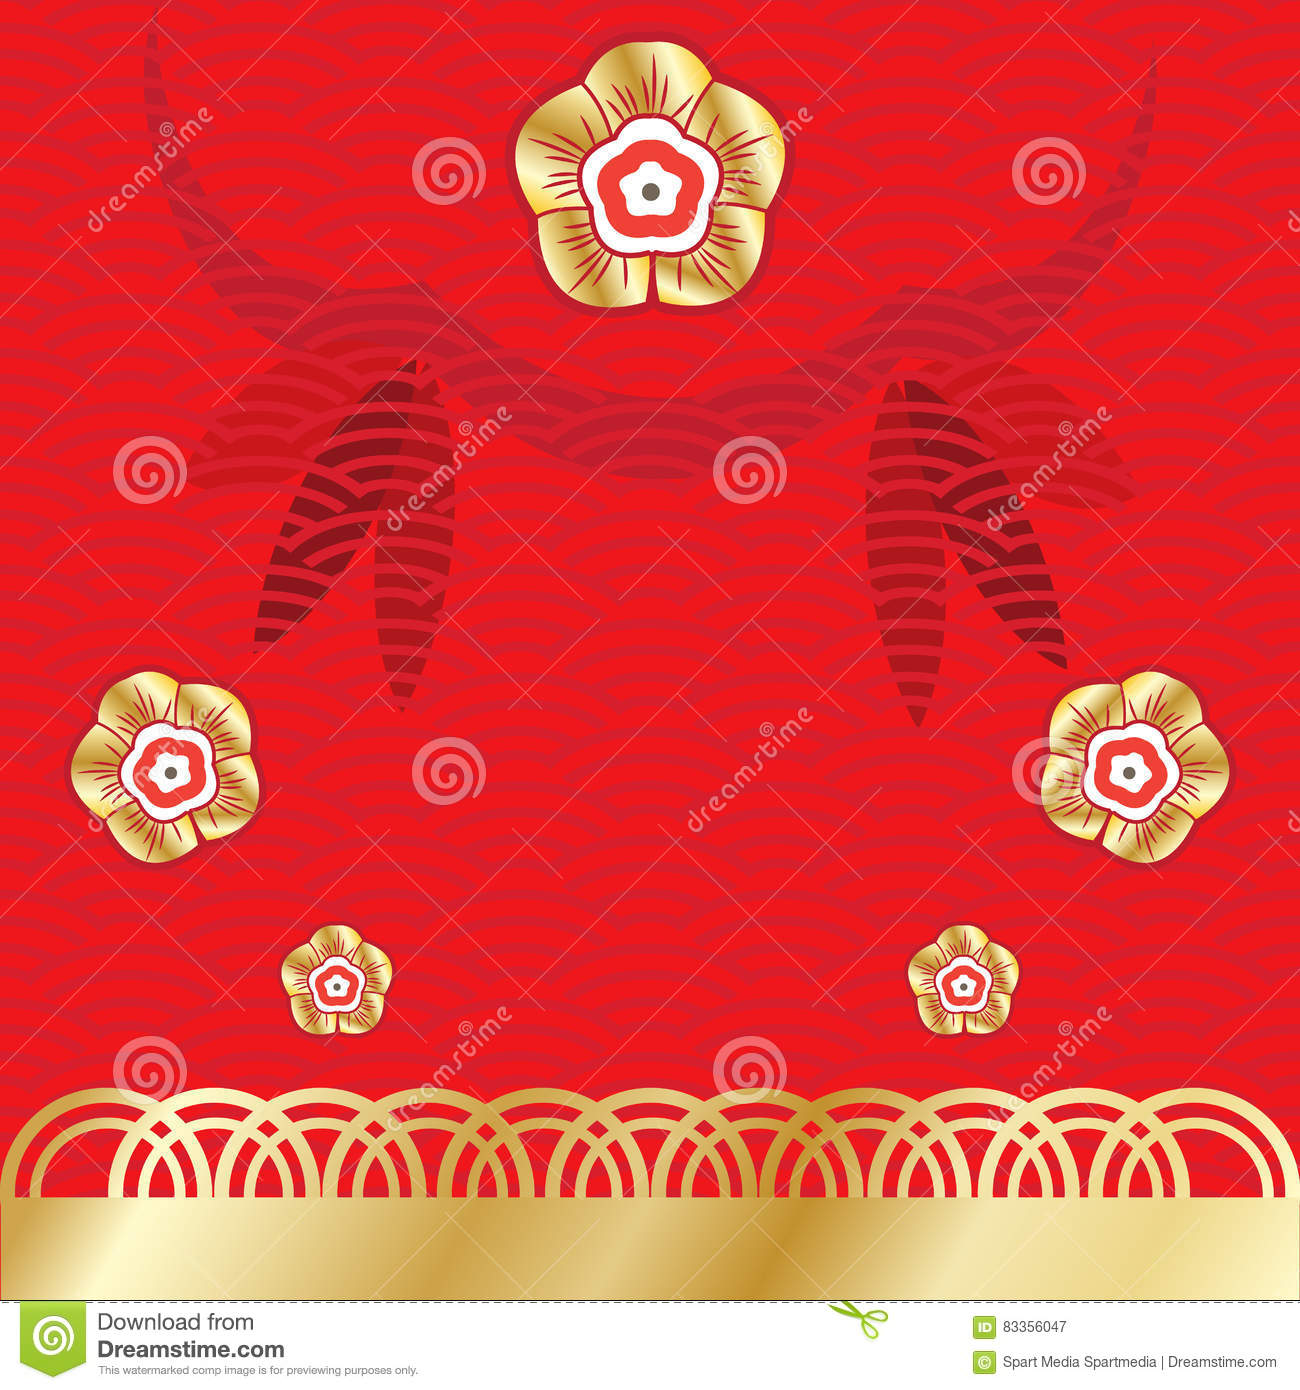 Chinese New Year 2020 Floral Ornaments Gold Frame Card ...